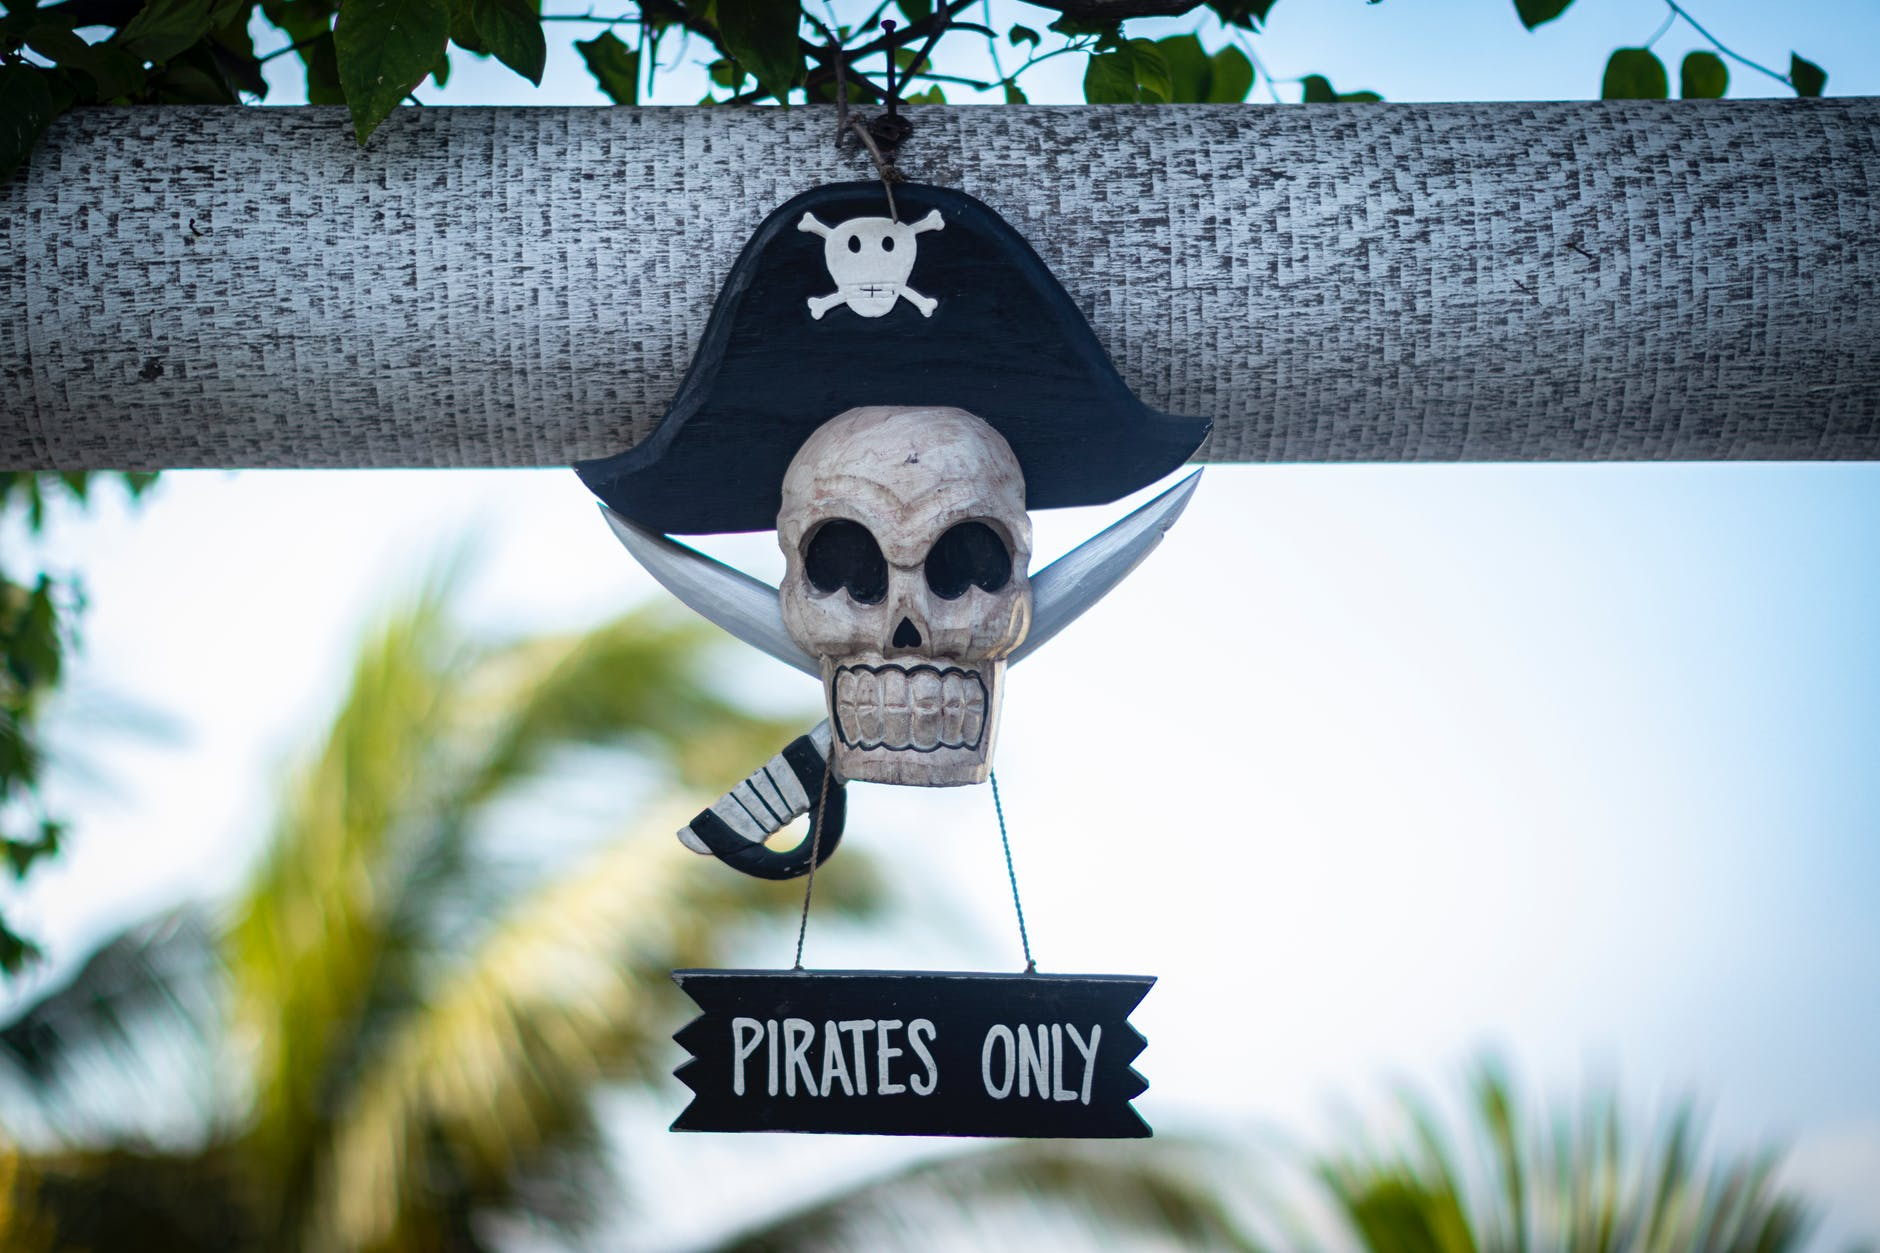 """A decoration shaped like a skull in a pirate hat and crossed swords, with a sign that reads """"Pirates Only""""."""